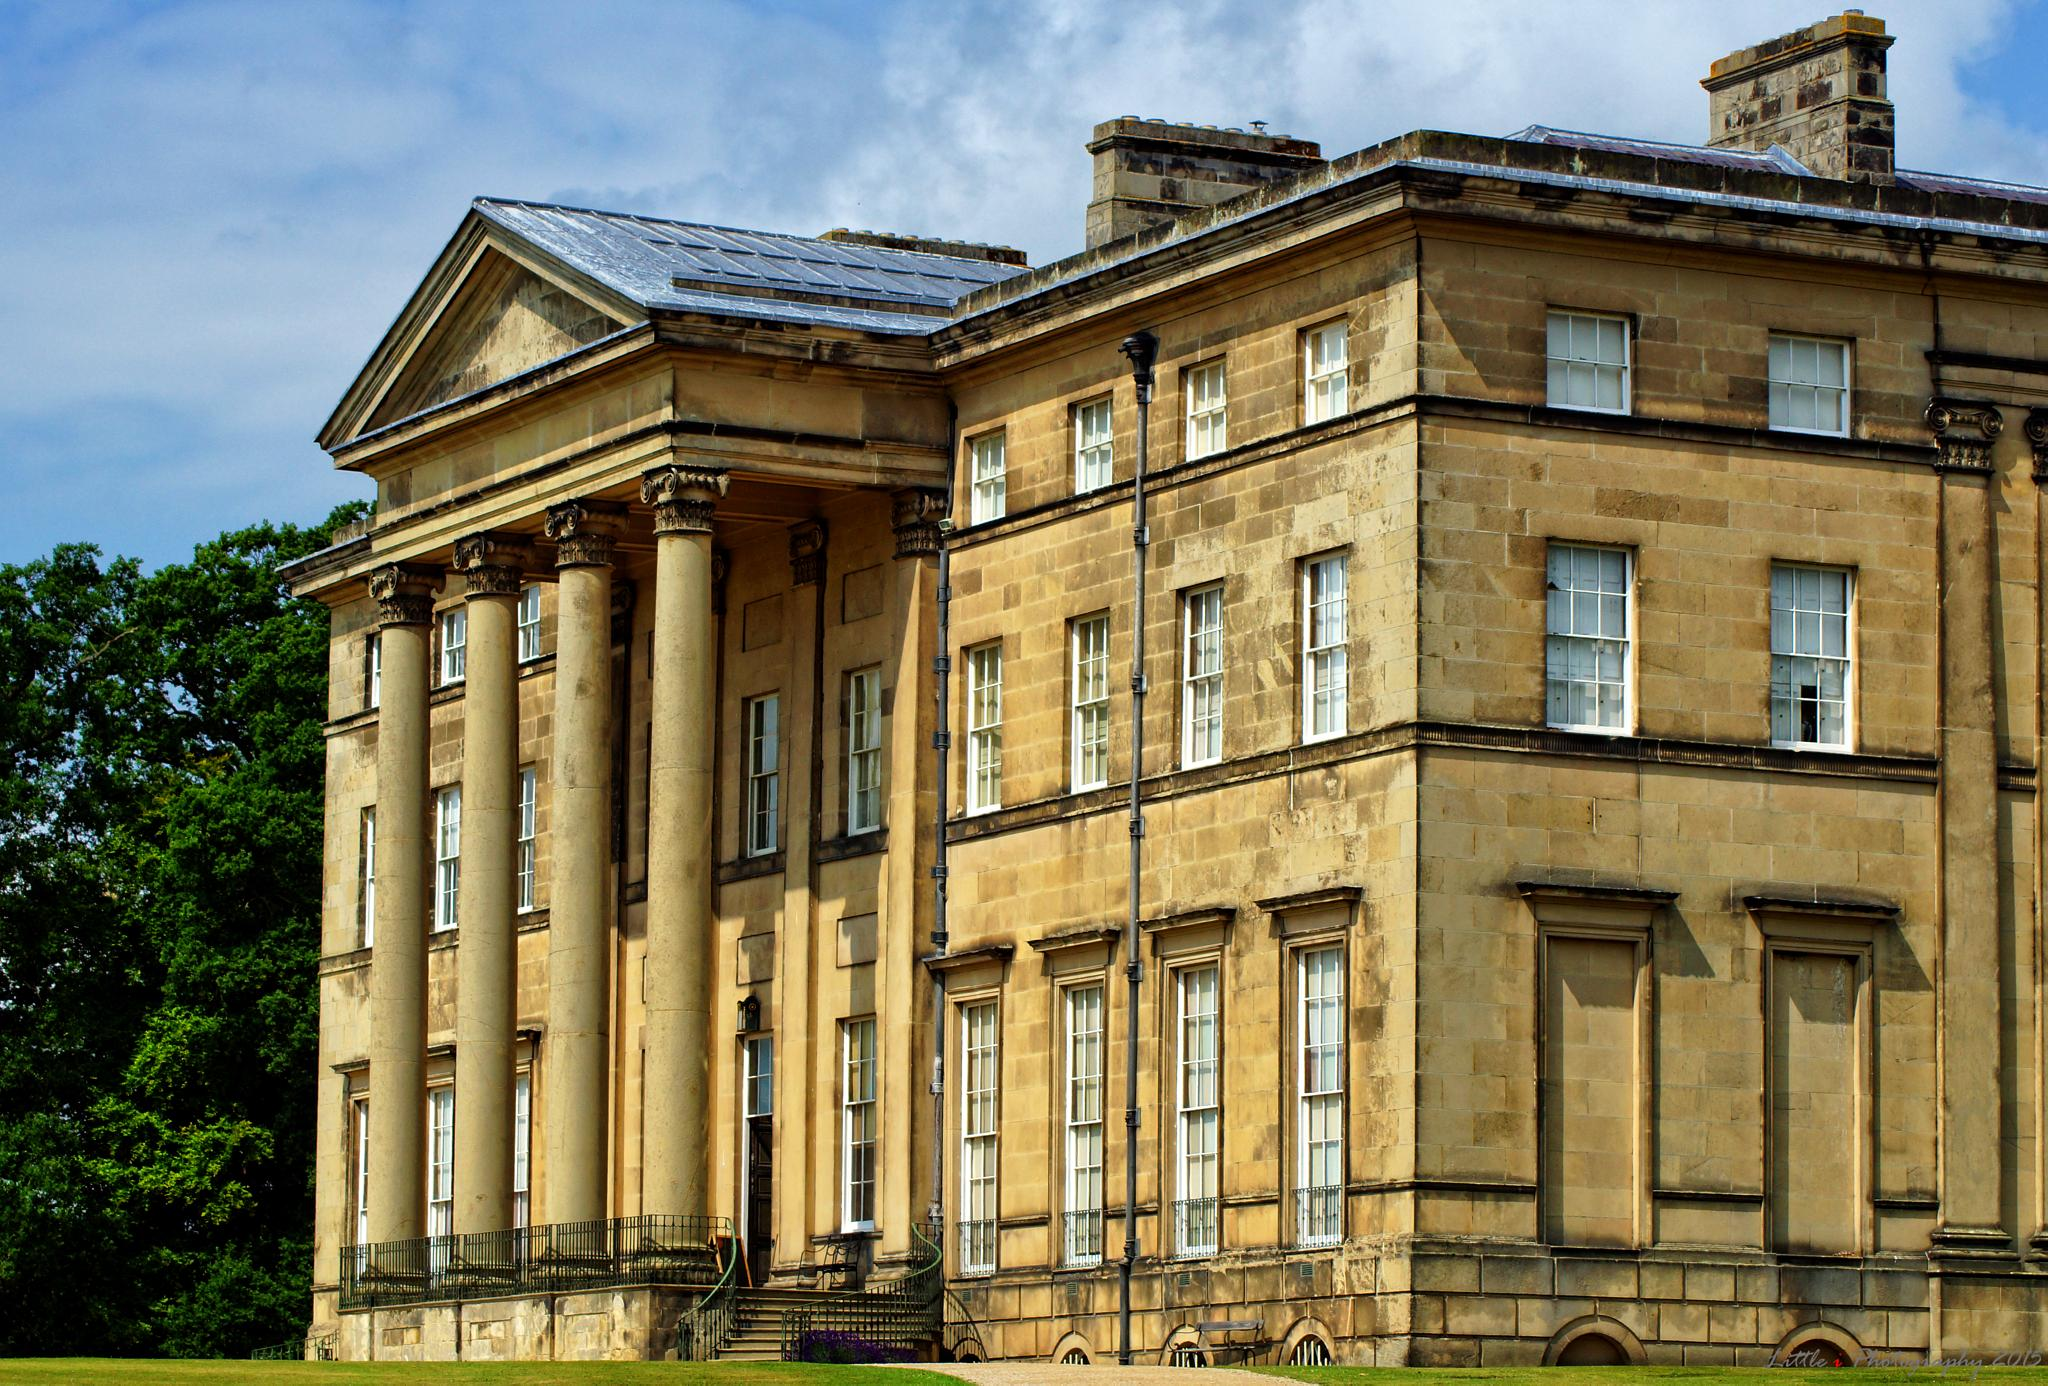 Attingham Hall by davecarter754